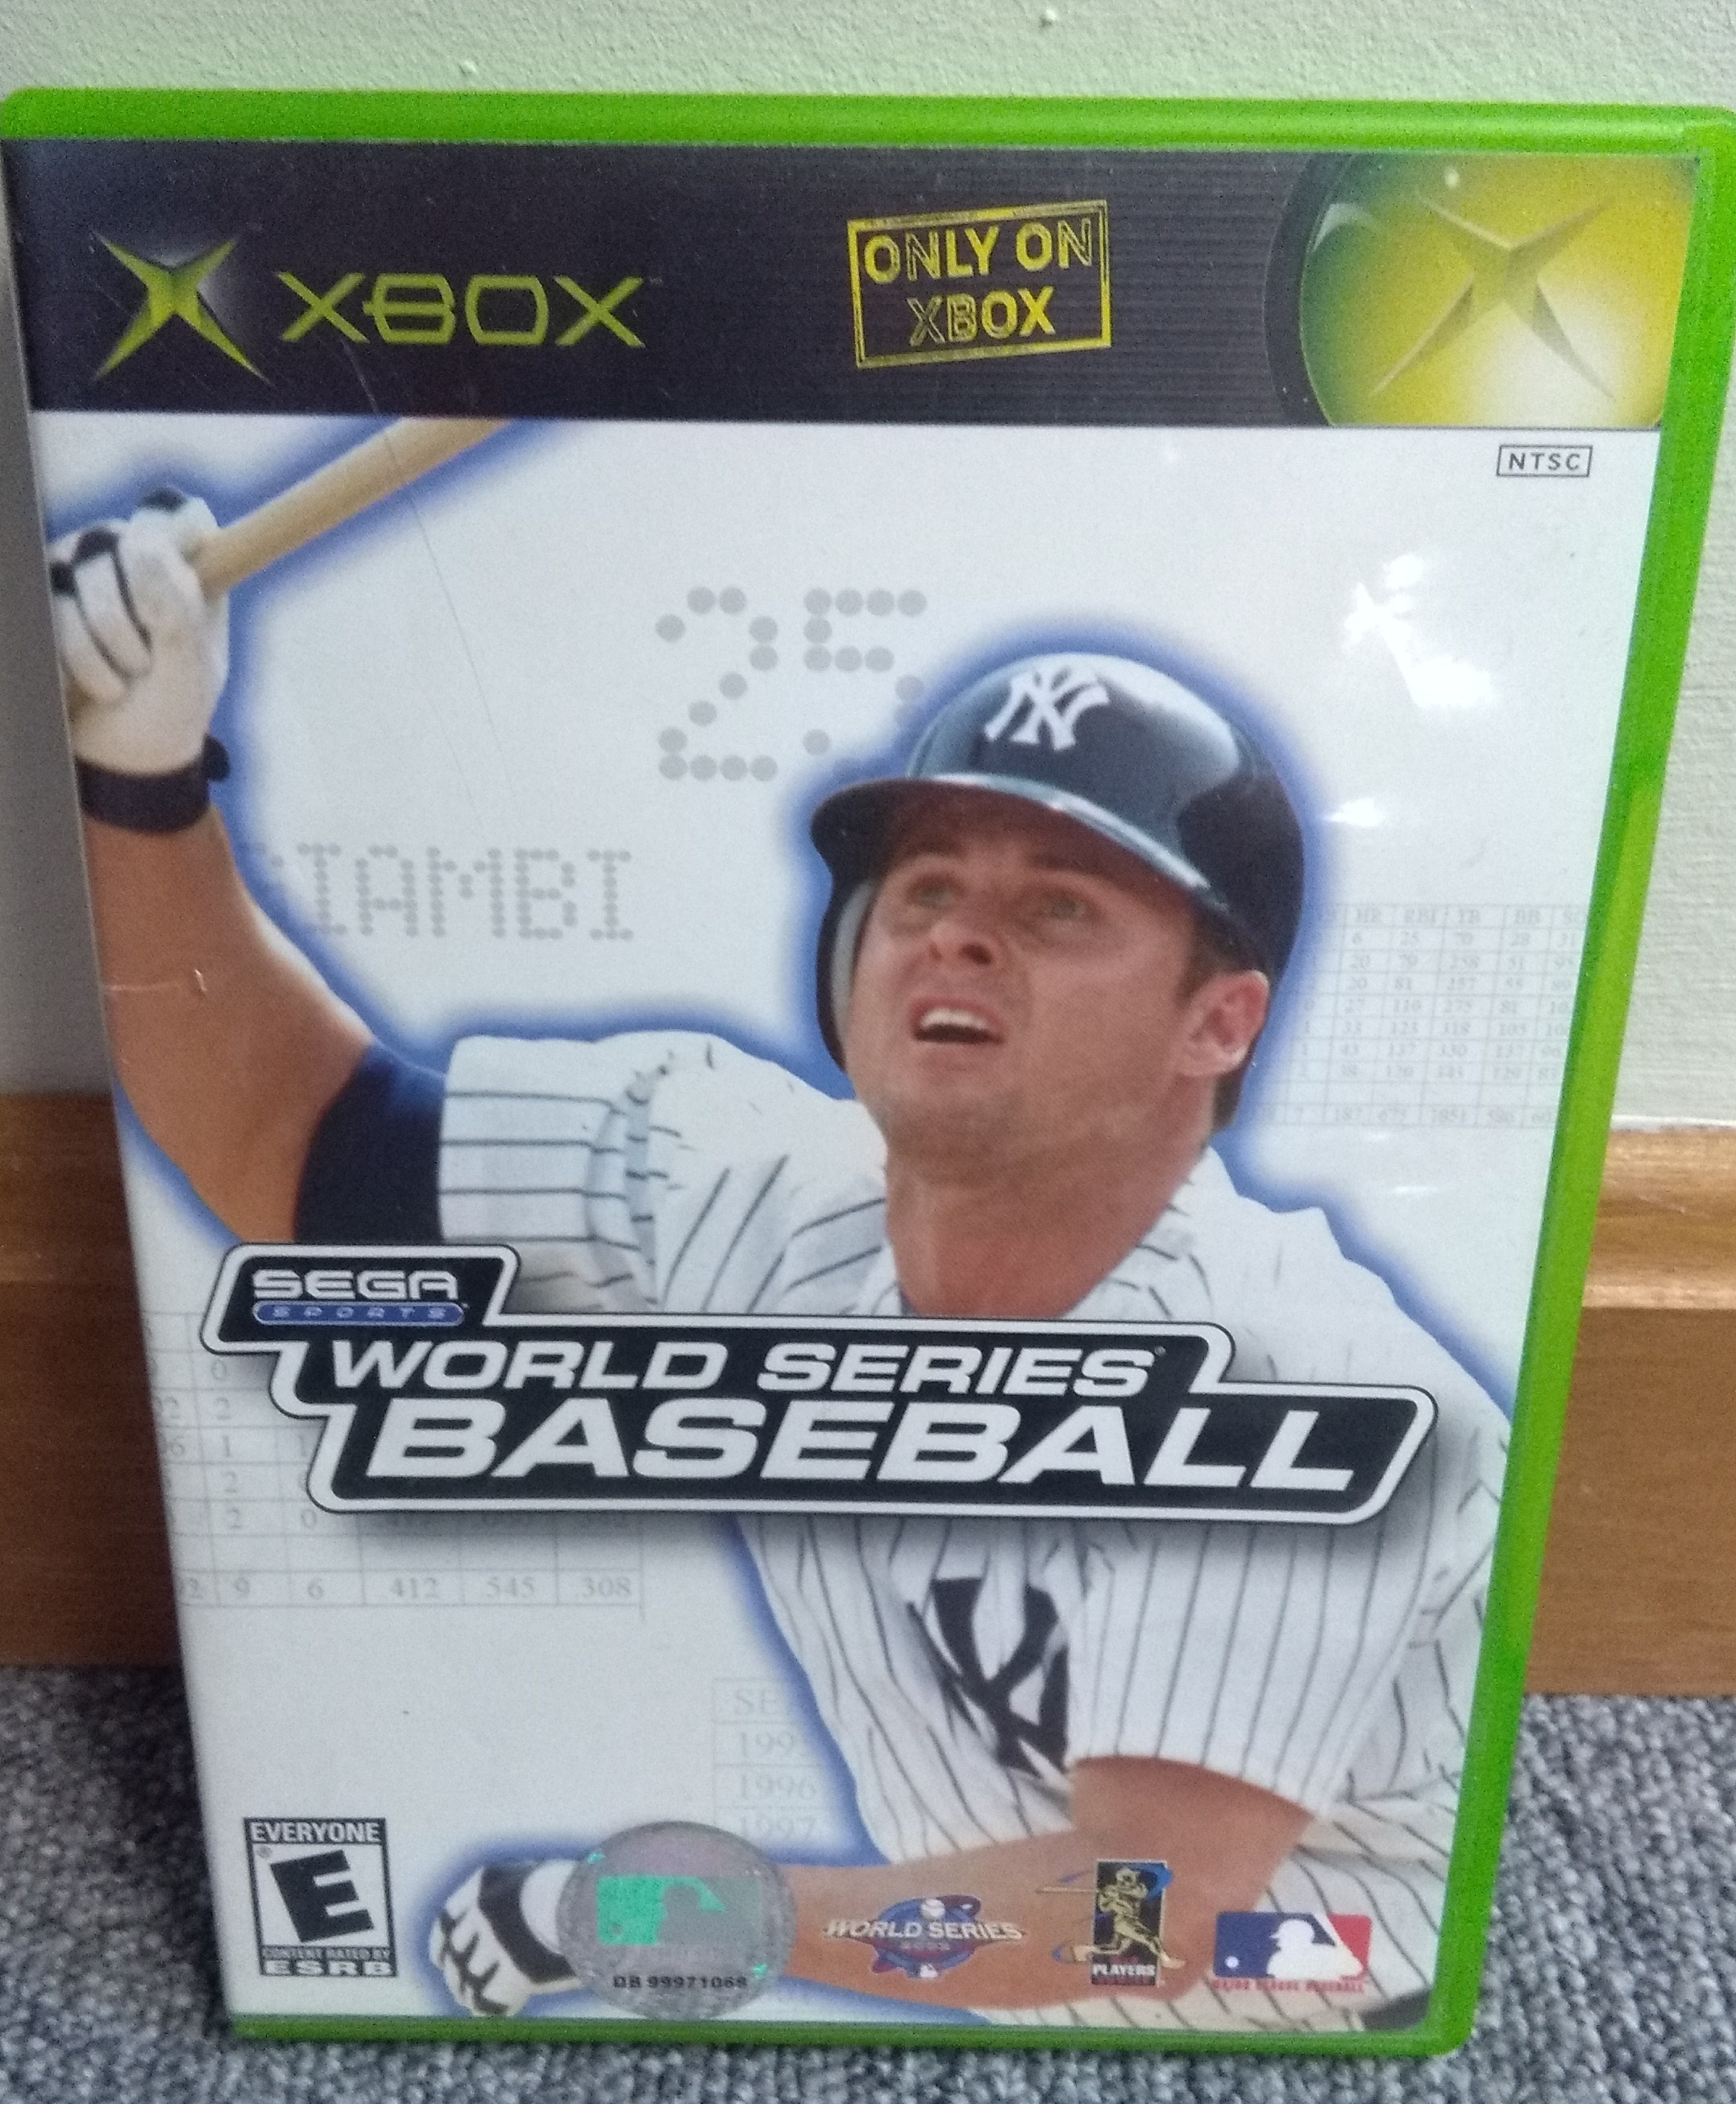 SEGA SERIES WORLD SERIES BASEBALL XBOX GAME